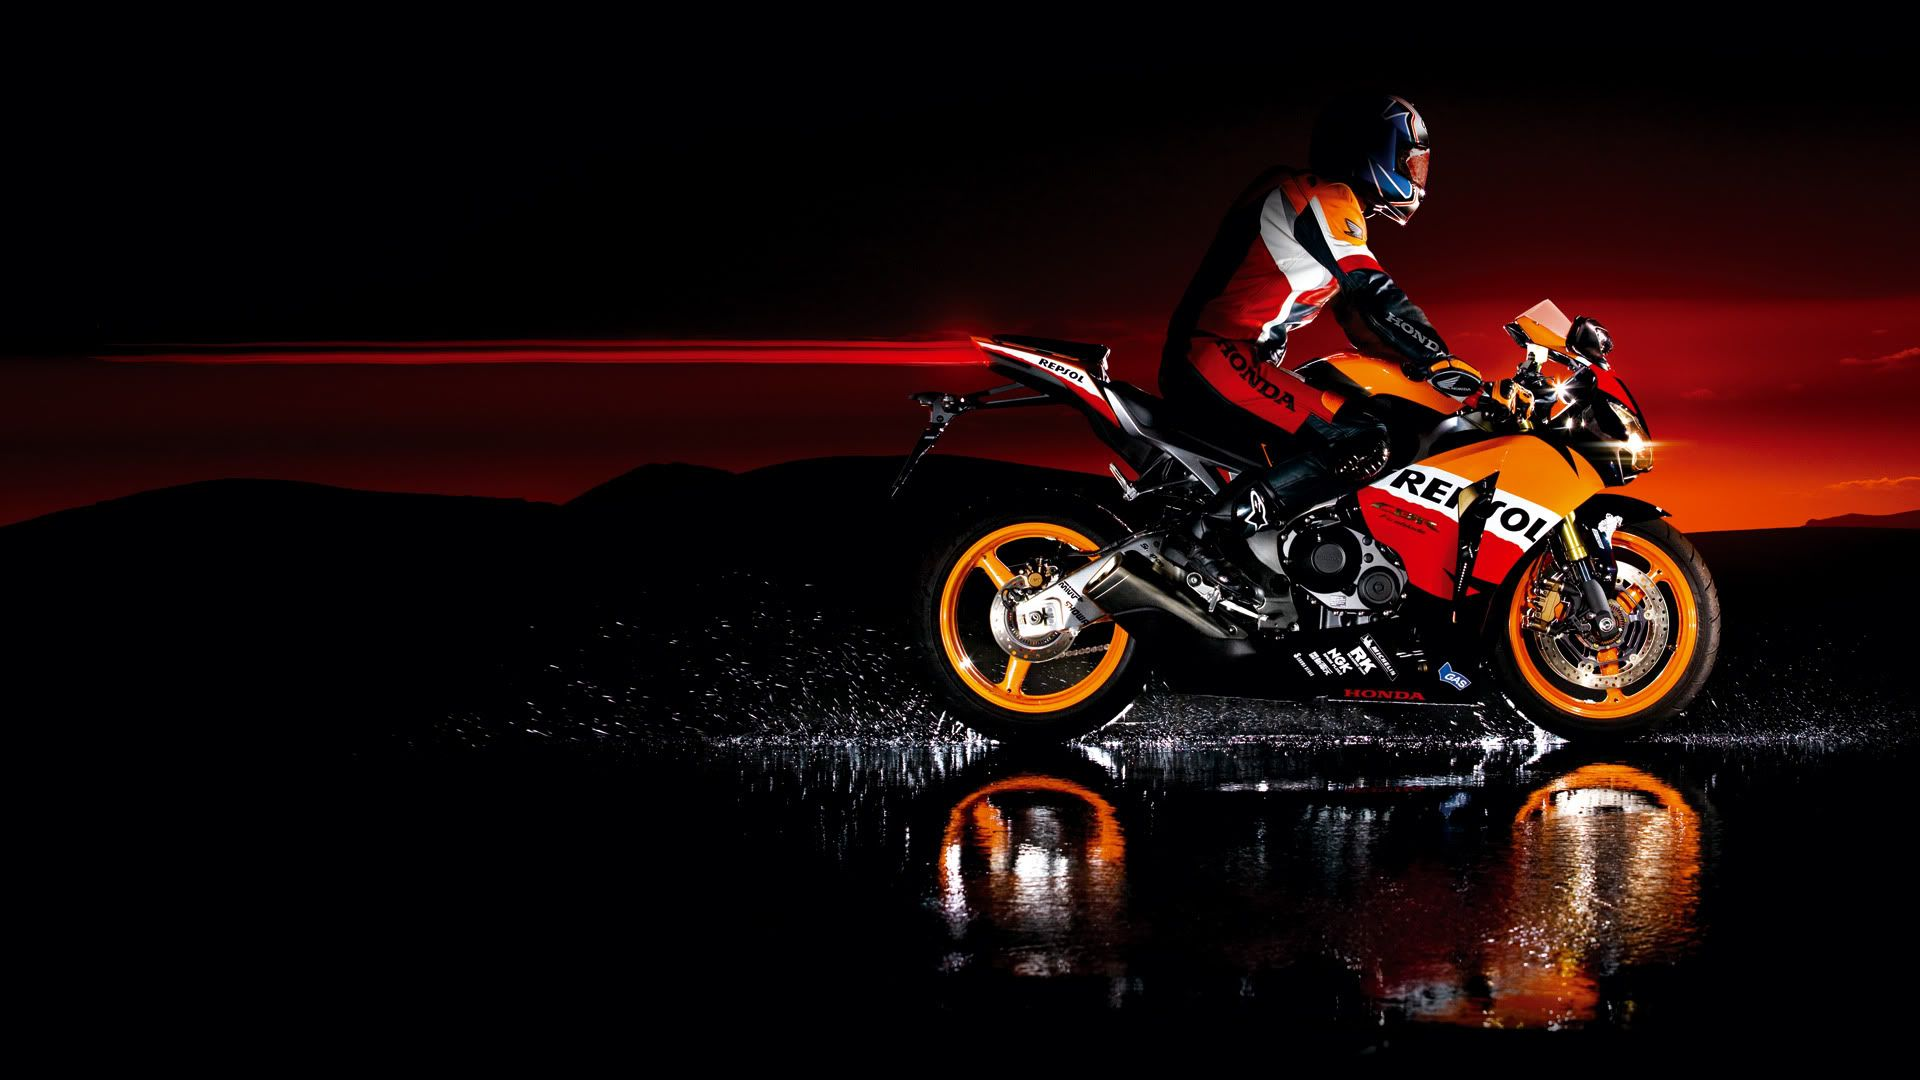 Pin By Noor Fatima On Bikes Wallpapers Motorcycle Wallpaper Honda Motorcycles Honda Bikes Download wallpaper cave ktm gif